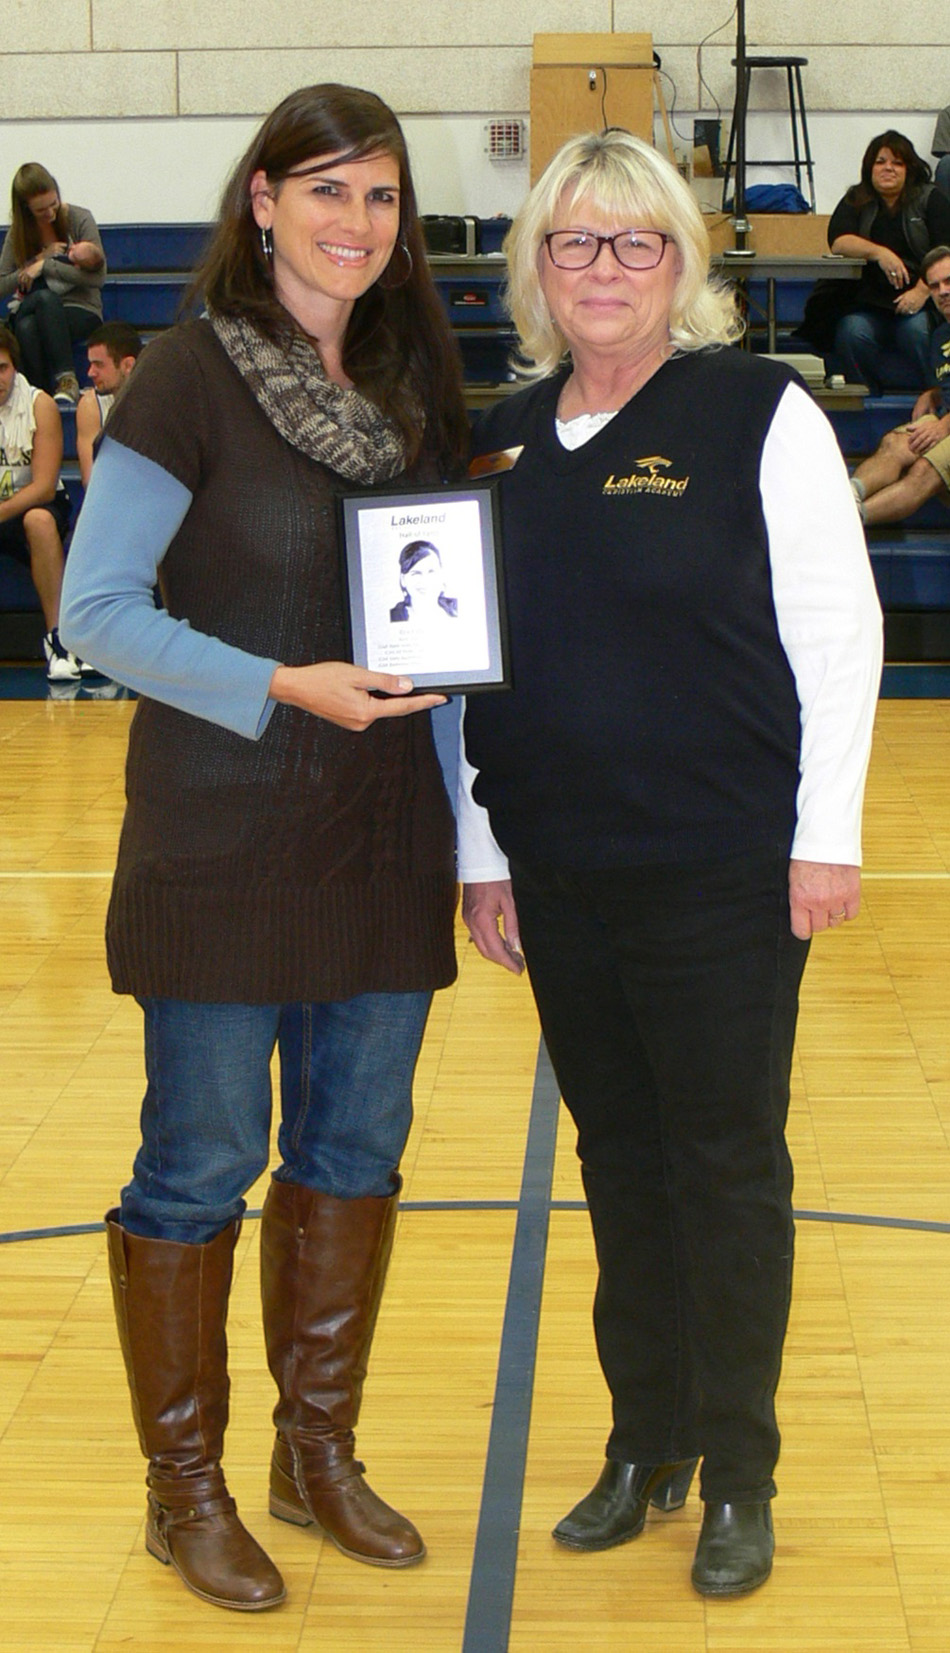 Kristin Calizo (Doran) was inducted into the LCA athletic hall of fame. Pictured with Calizo is LCA administrator Joy Lavender. (Photos provided by LCA athletics)